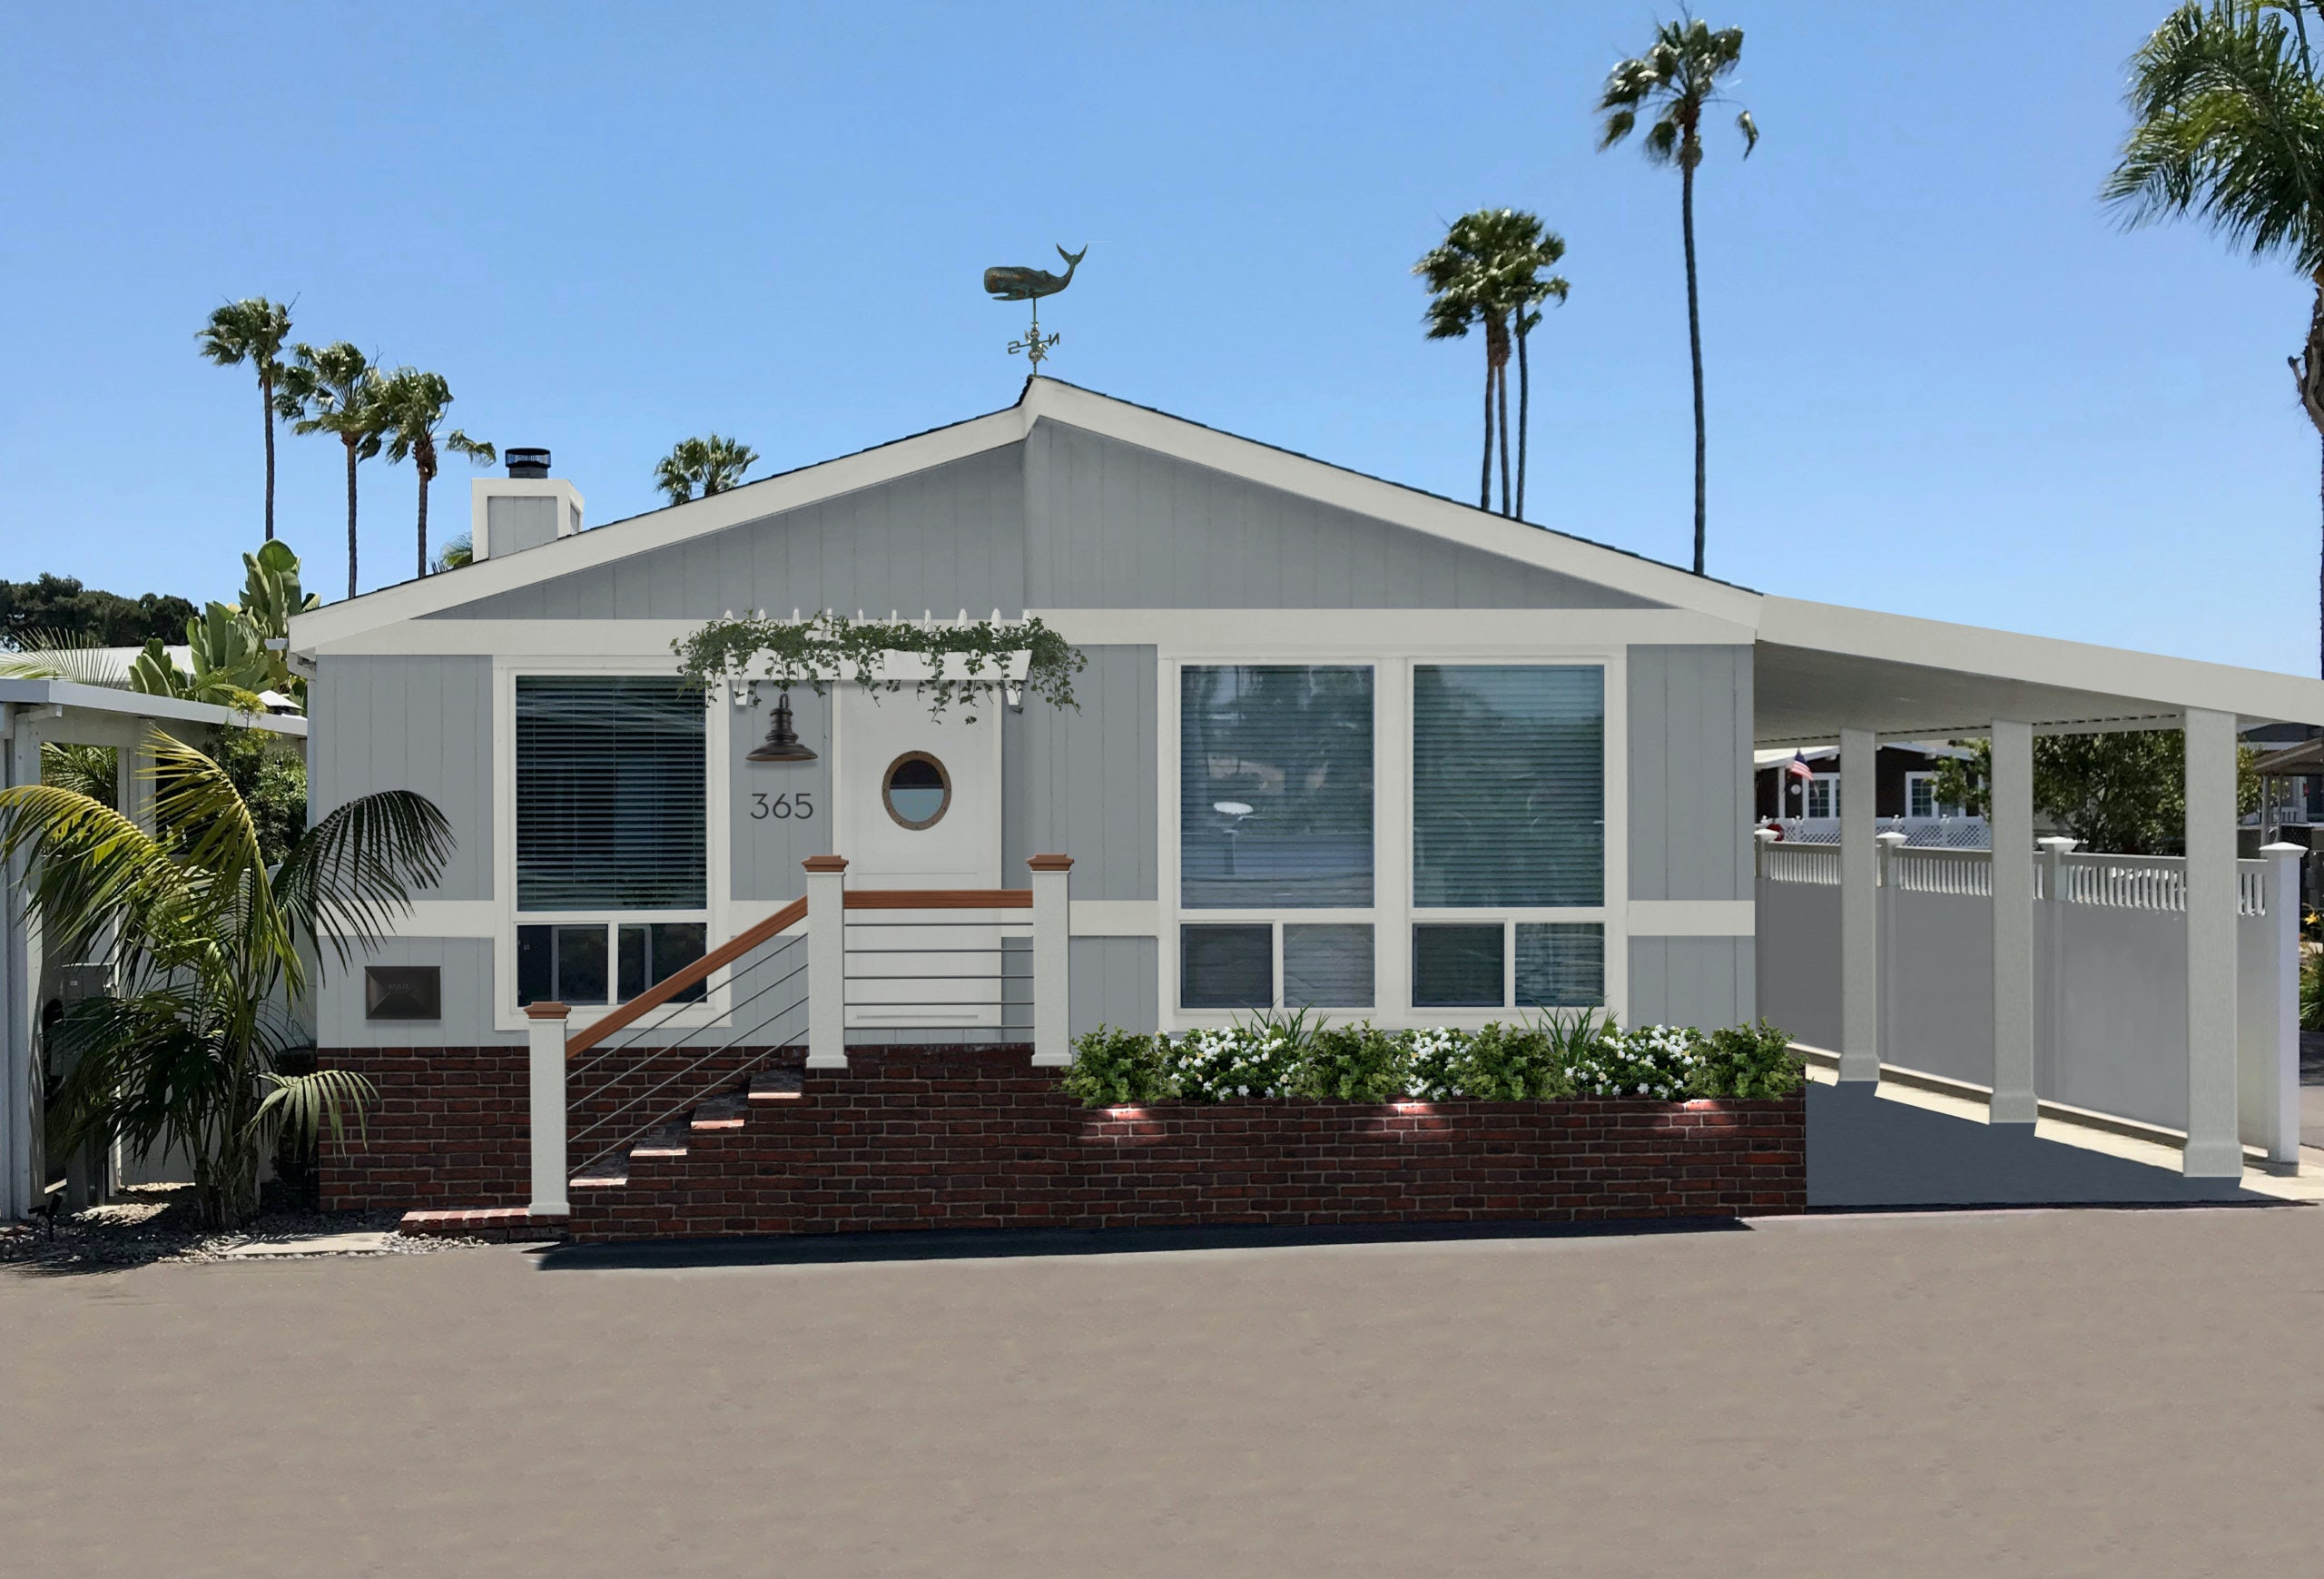 Newport Beach bungalow with porthole door